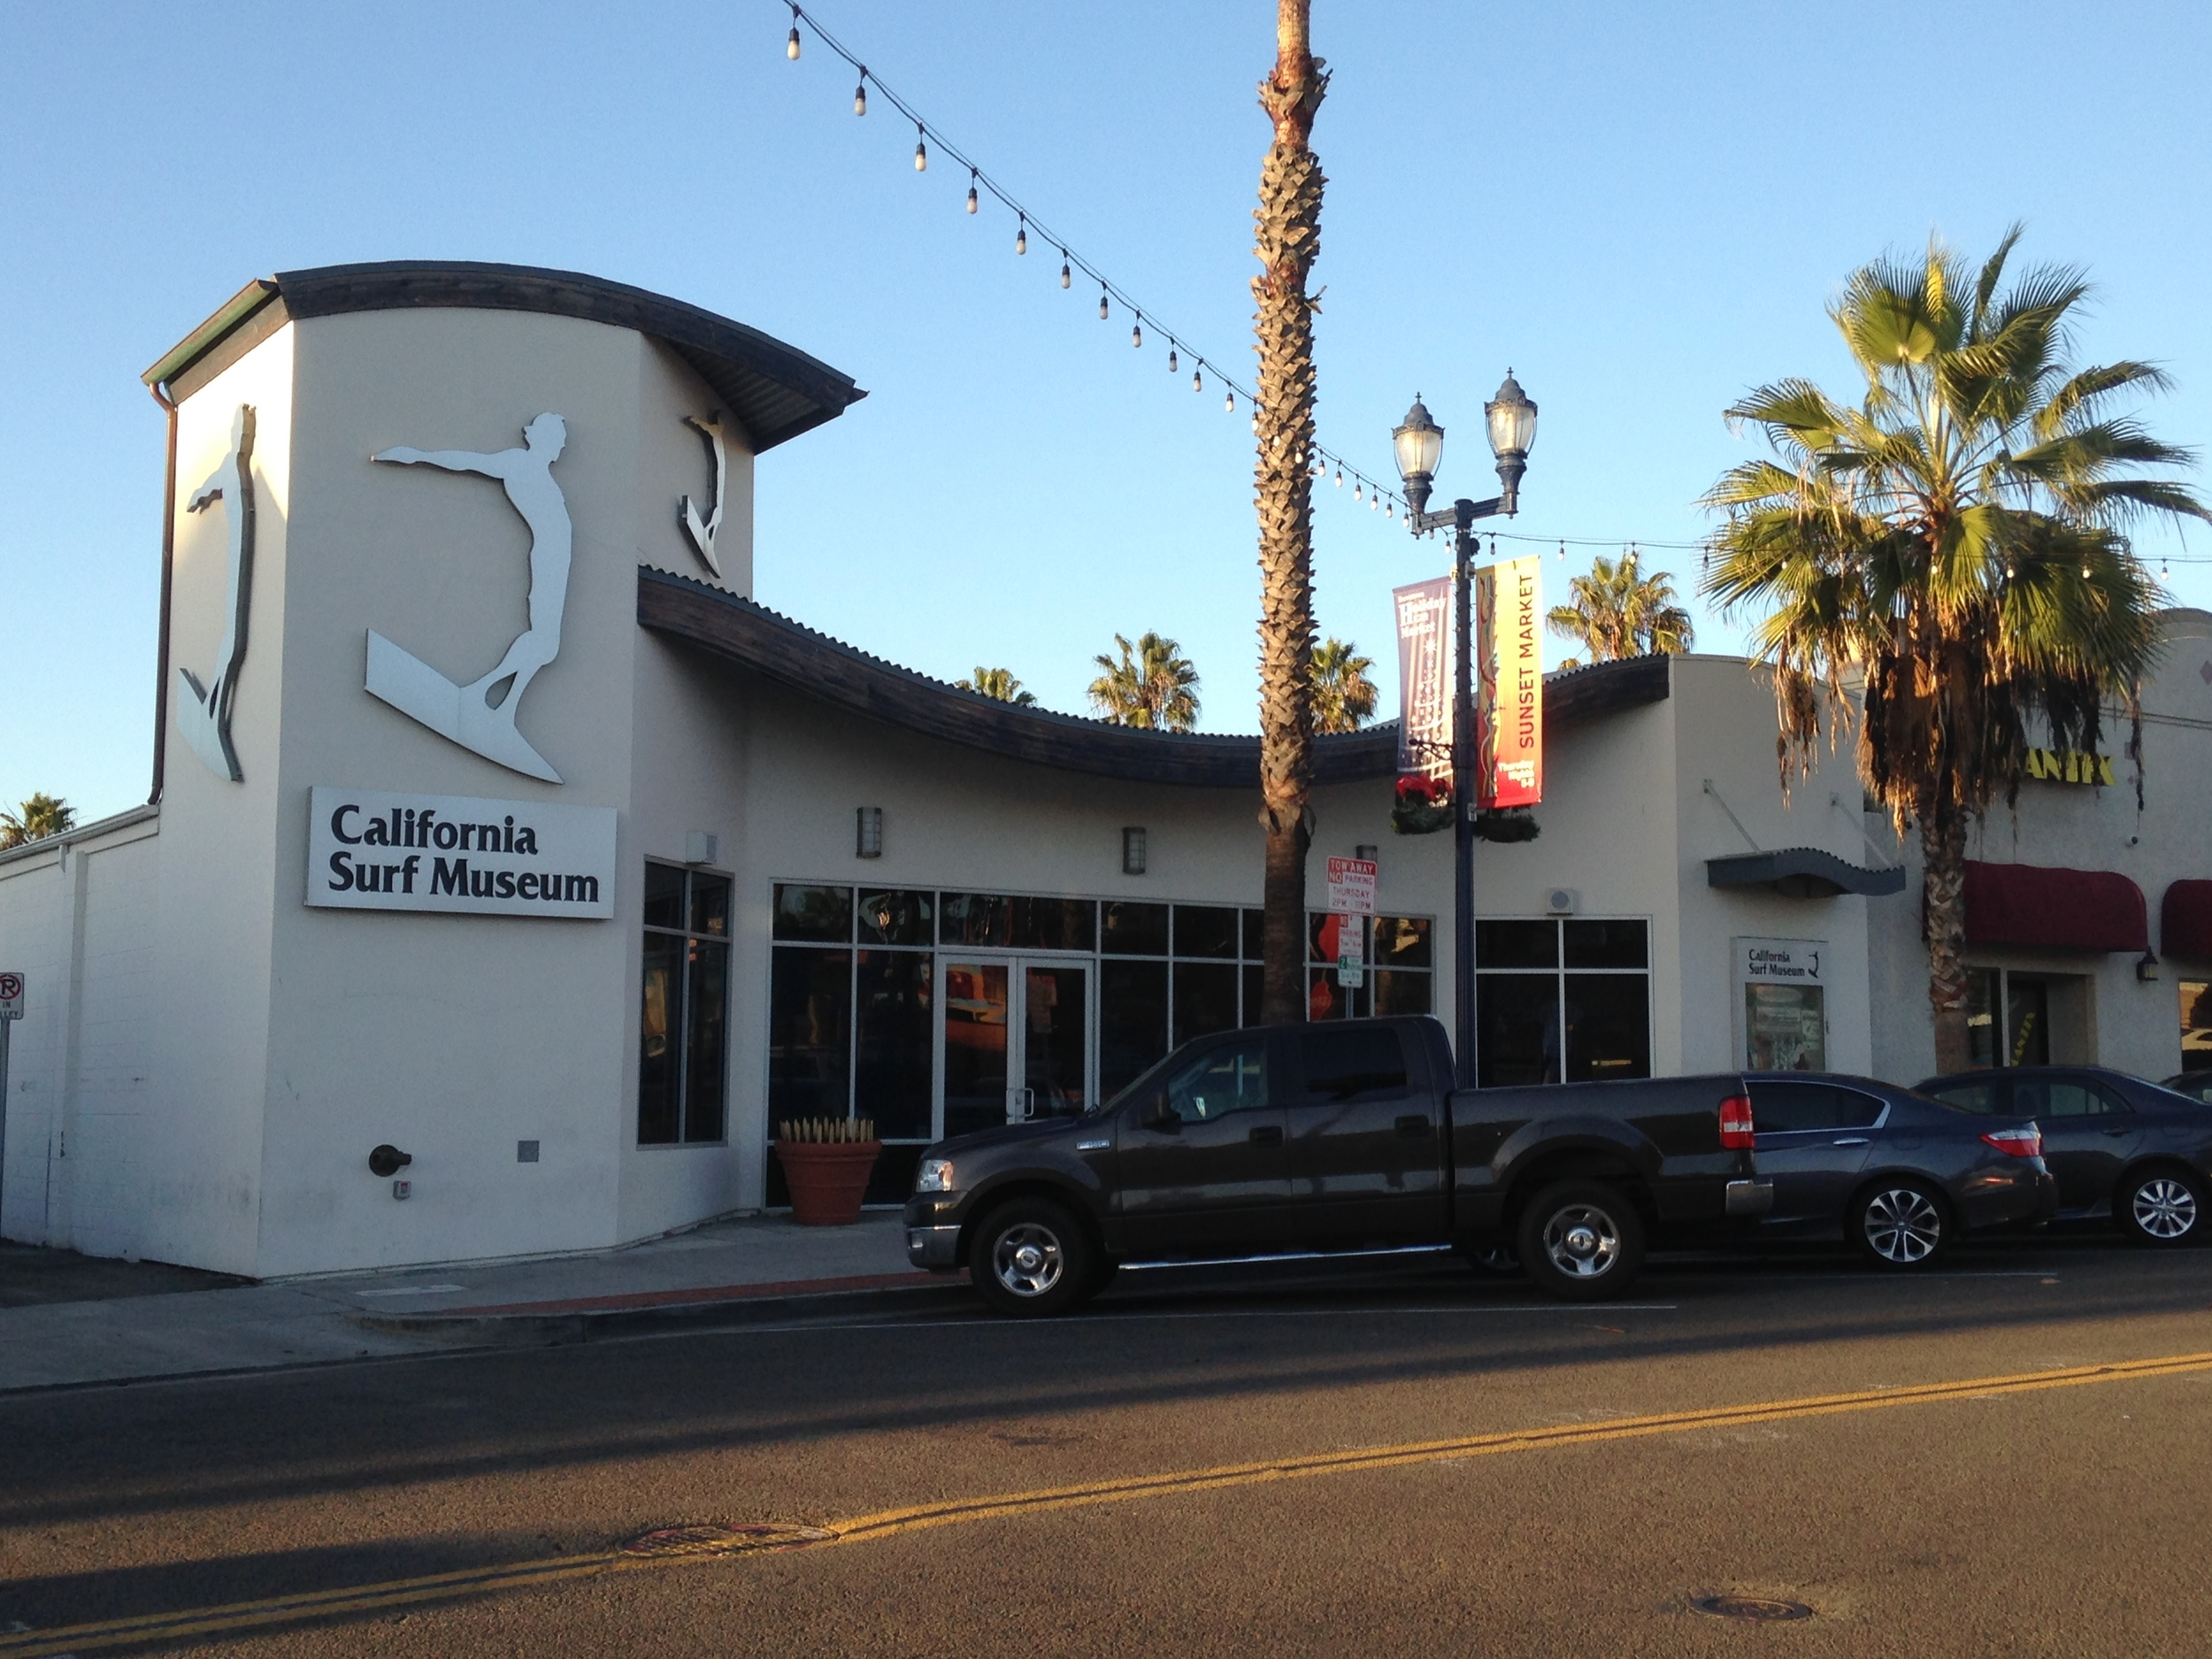 The California Surf Museum celebrates Oceanside's role in the history of surfing.